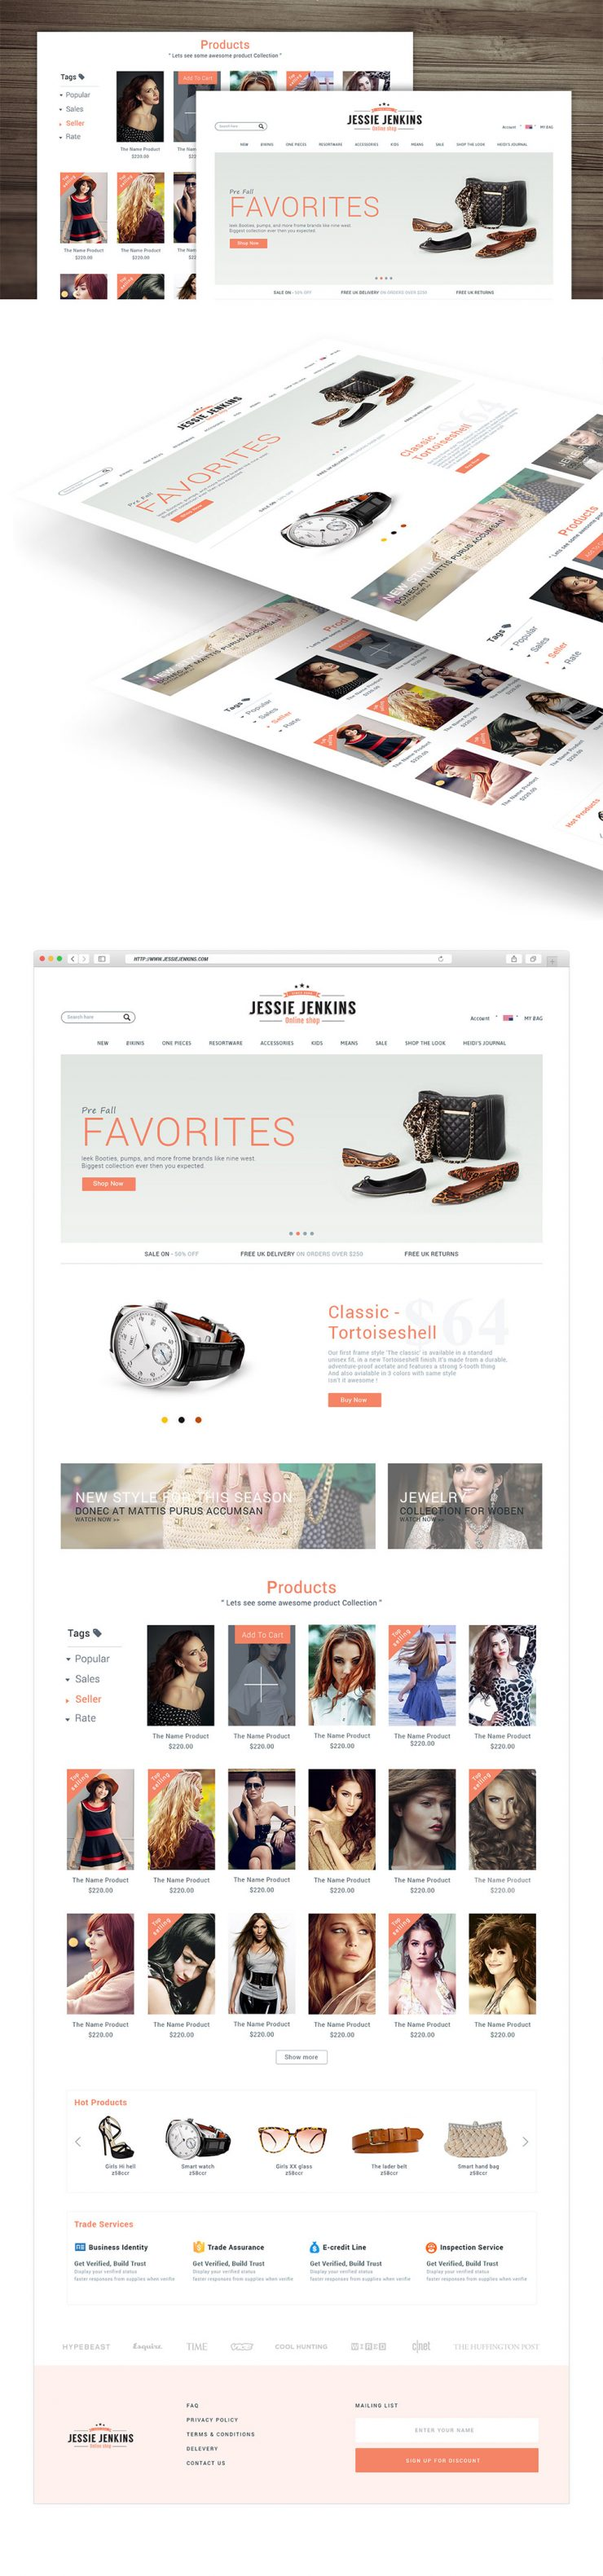 Modern Premium eCommerce Website Free PSD Template